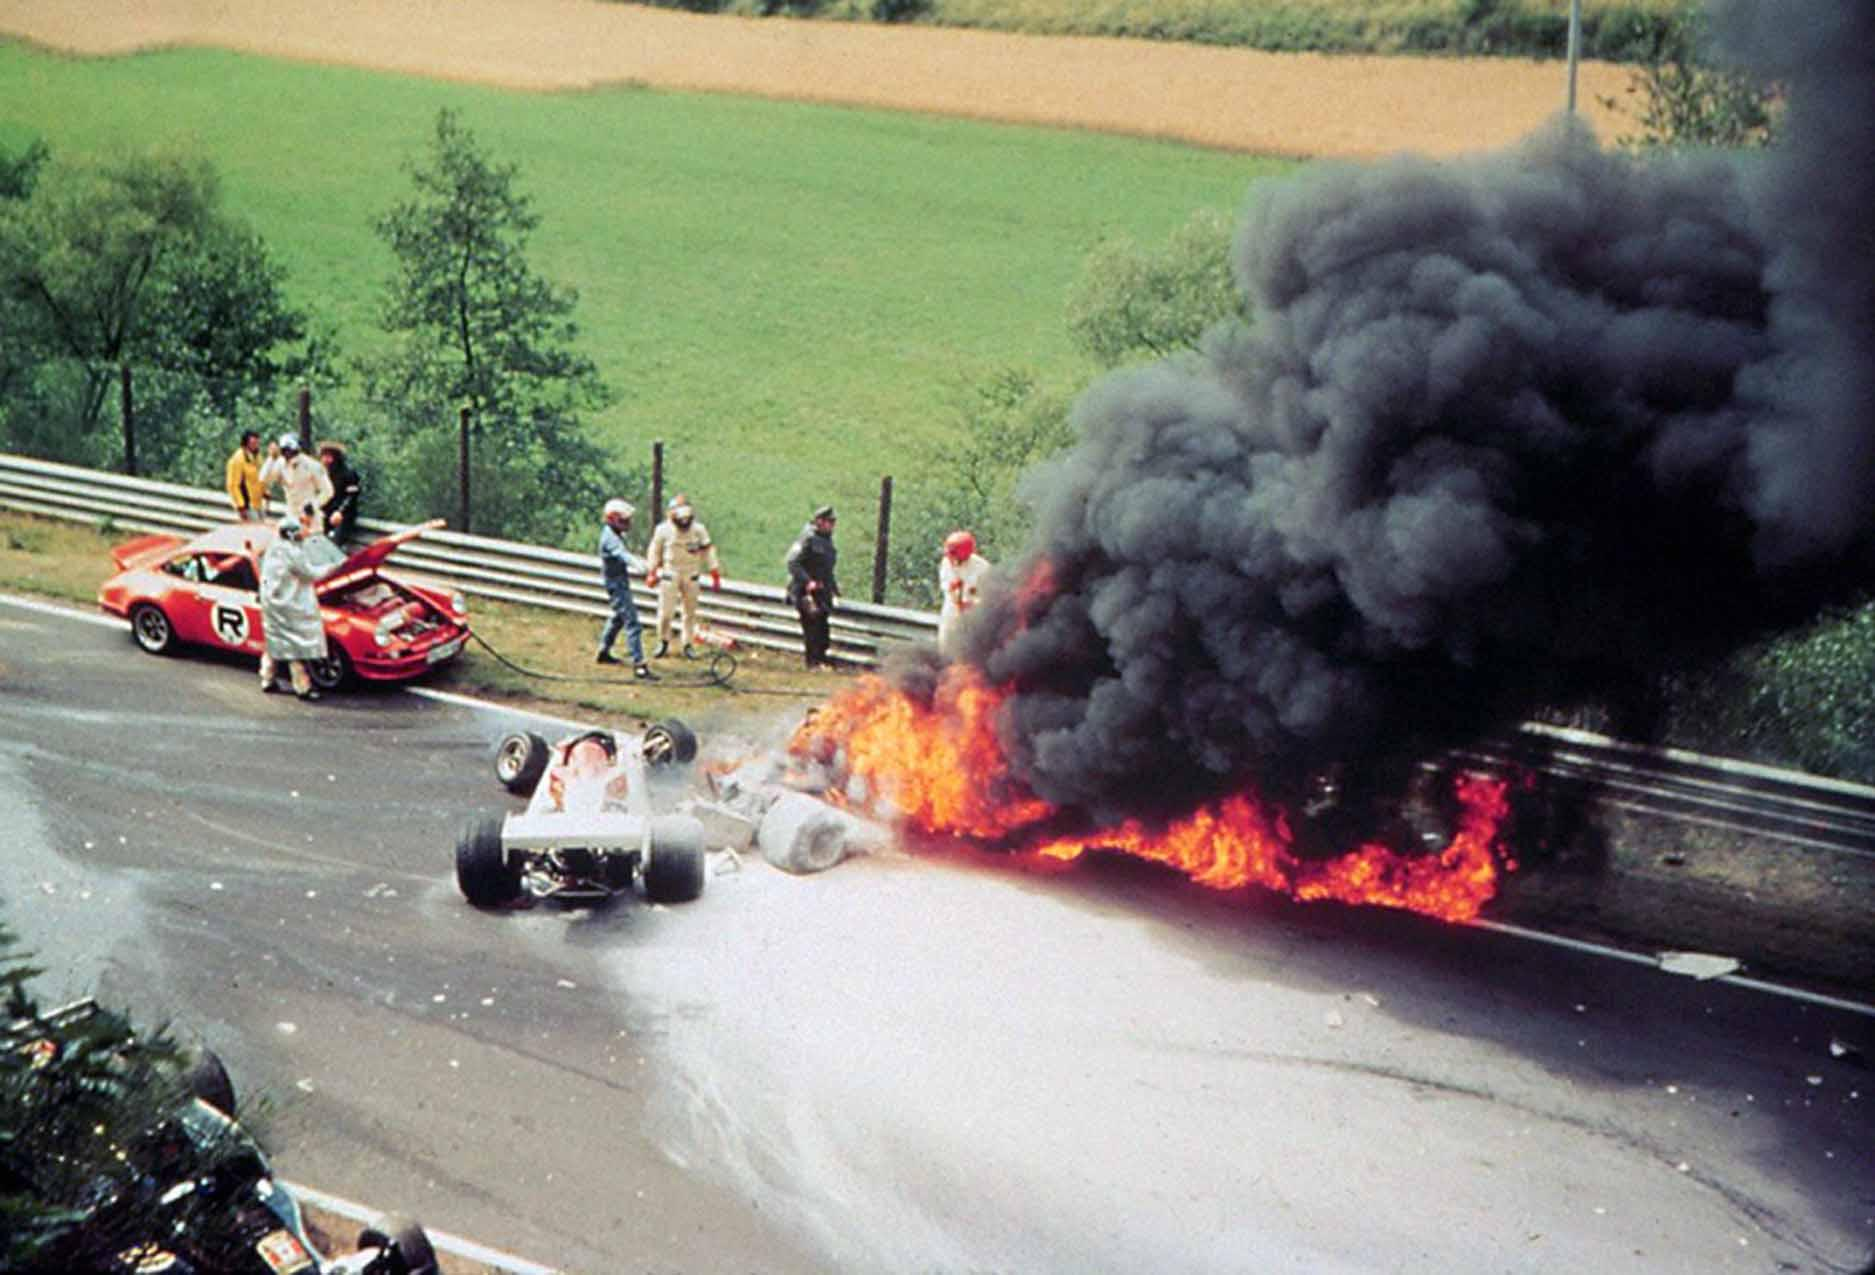 Lauda's life-threatening crash in 1976 prompted one of the greatest comebacks in sporting history